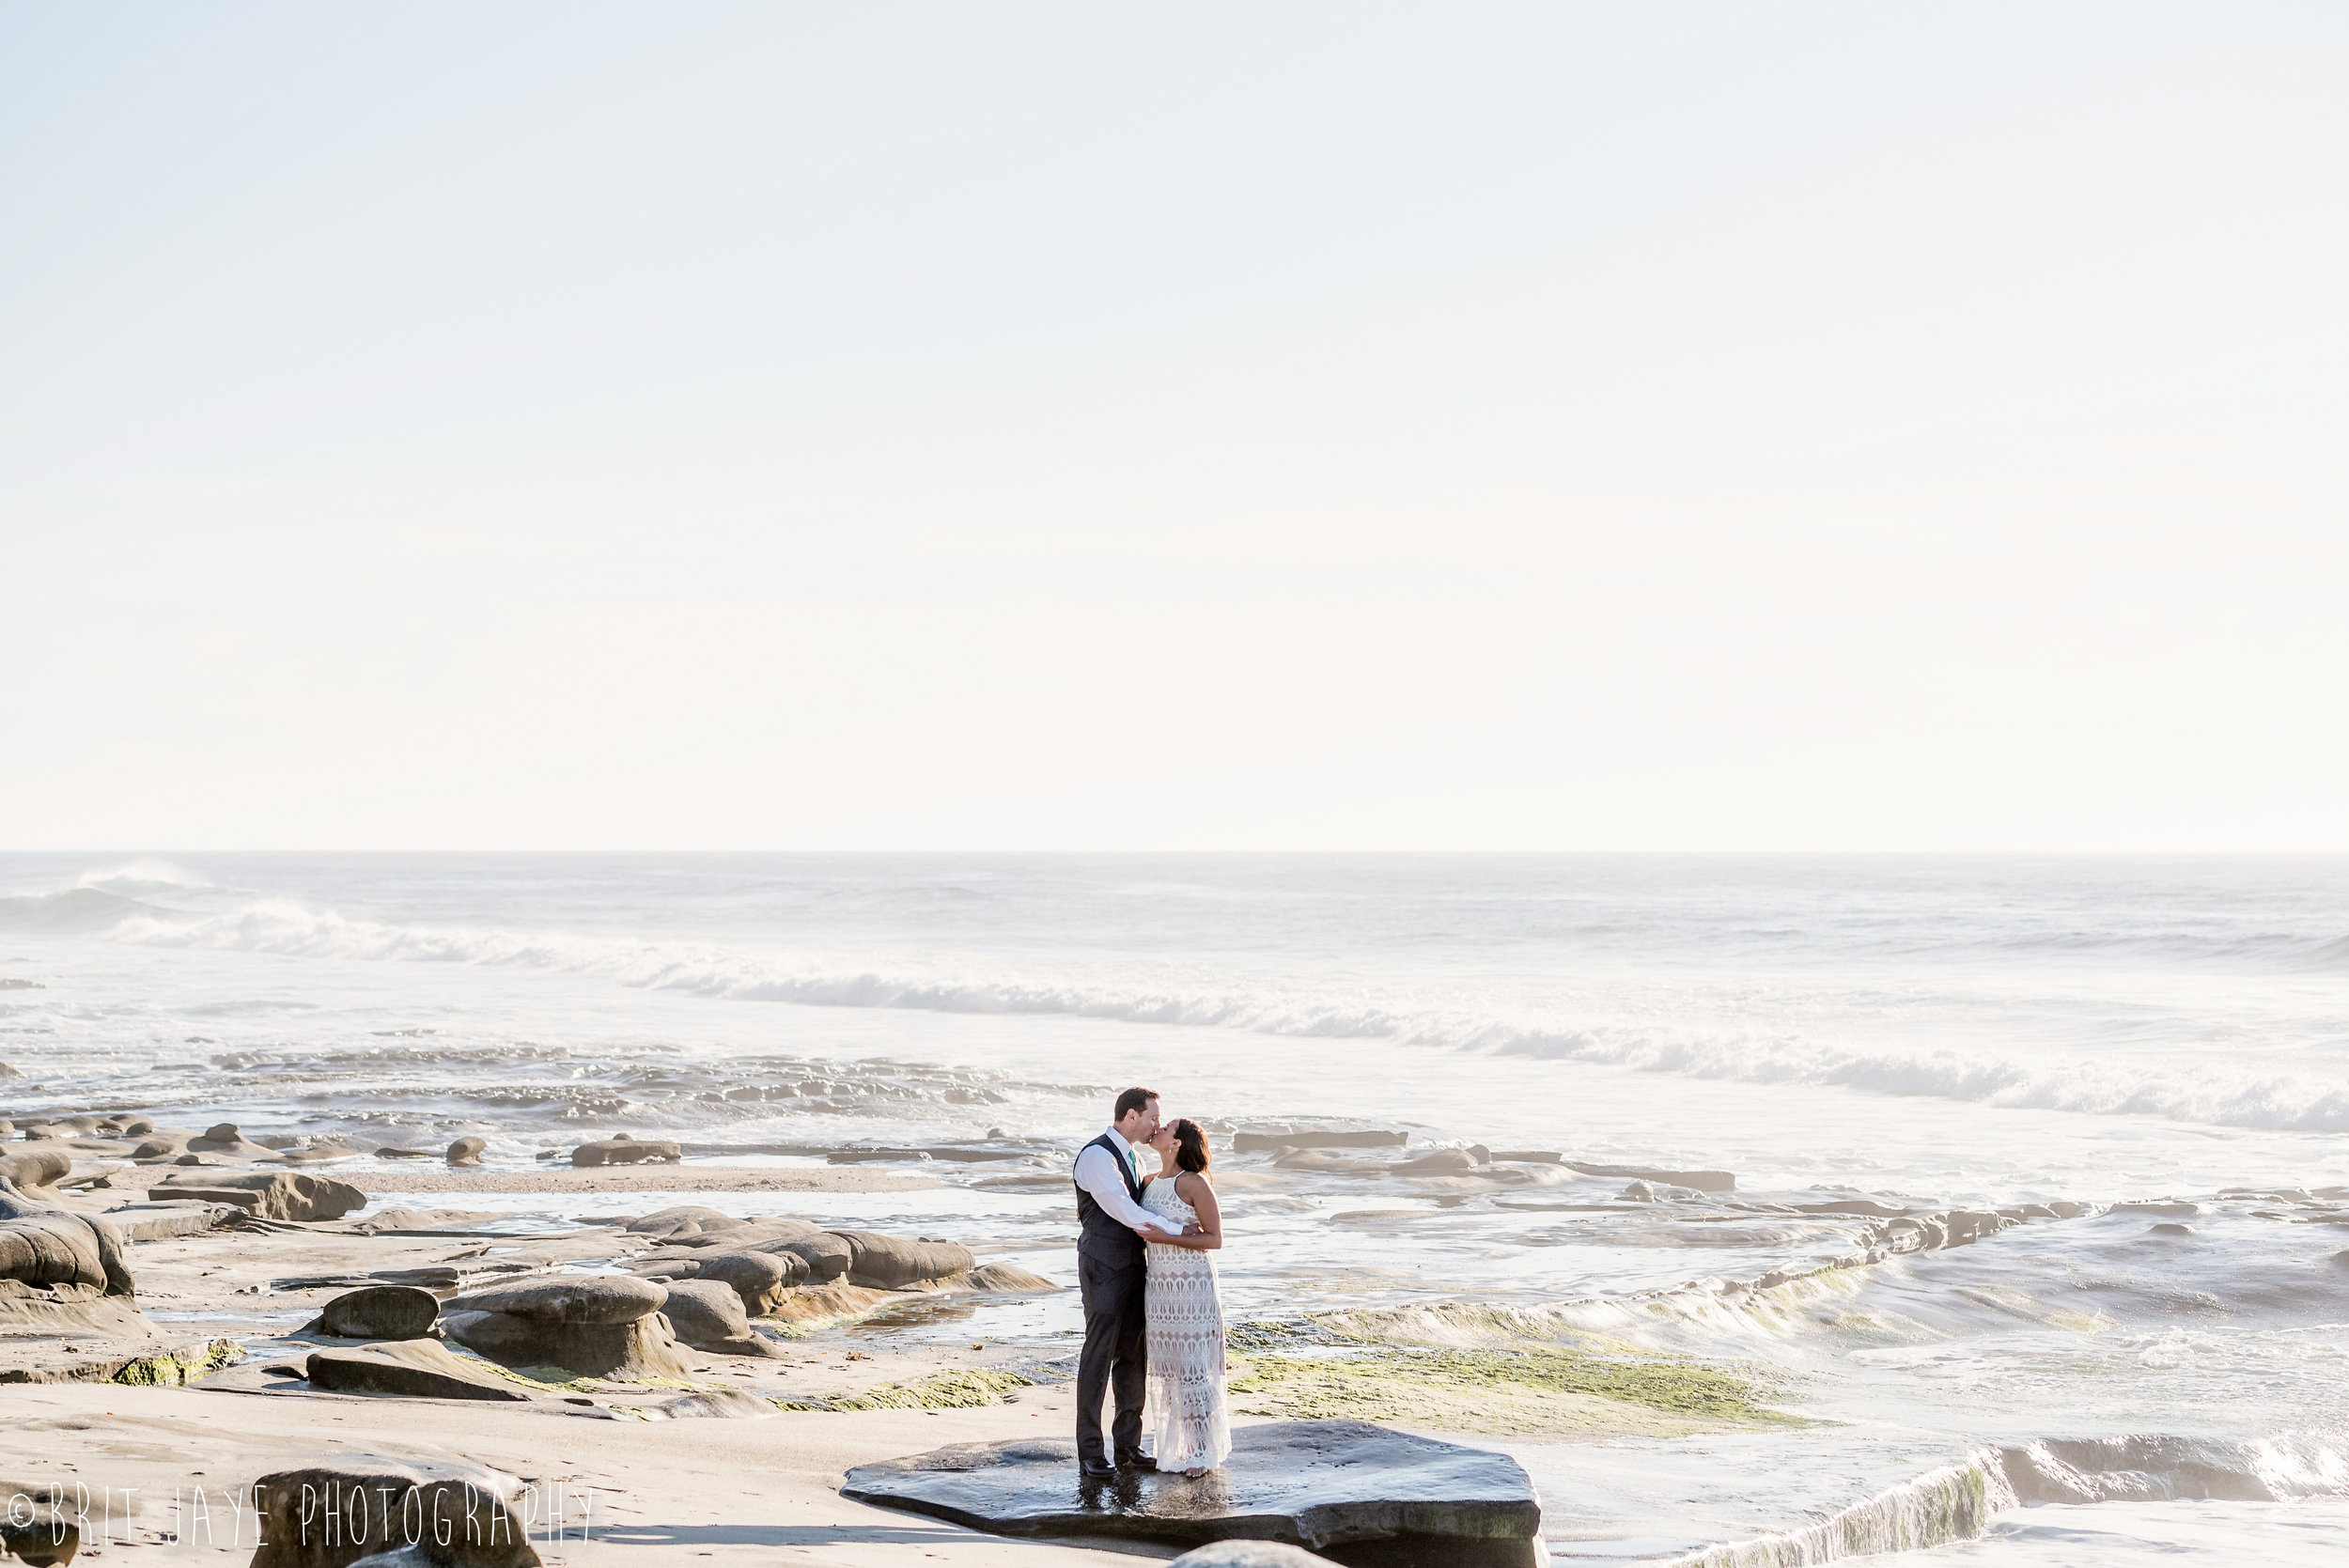 Brit_Jaye_Photography_Elopement_Wedding_Photo_Shoot_San_Diego-11.jpg